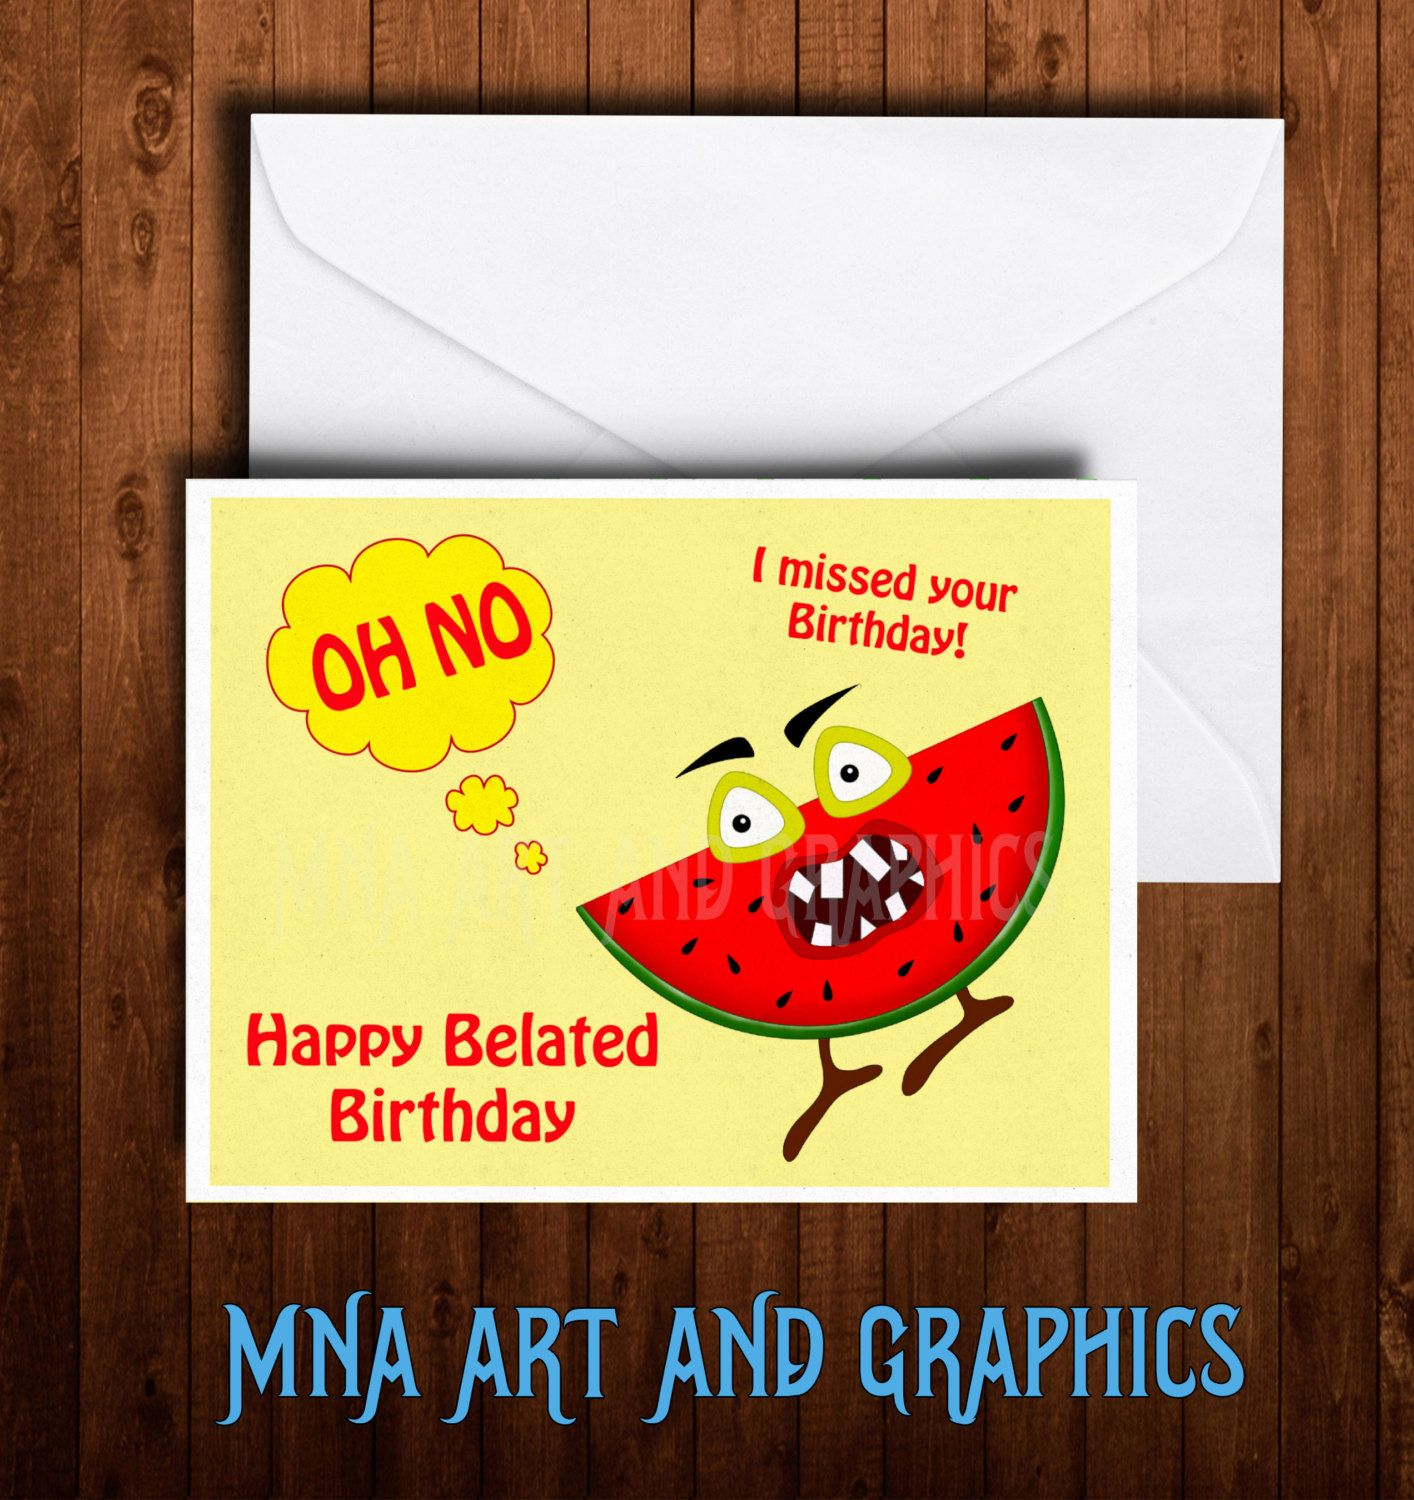 Belated birthday cards birthday cards funny fruit card belated birthday cards birthday cards funny fruit card watermelon birthday melon birthday kristyandbryce Images